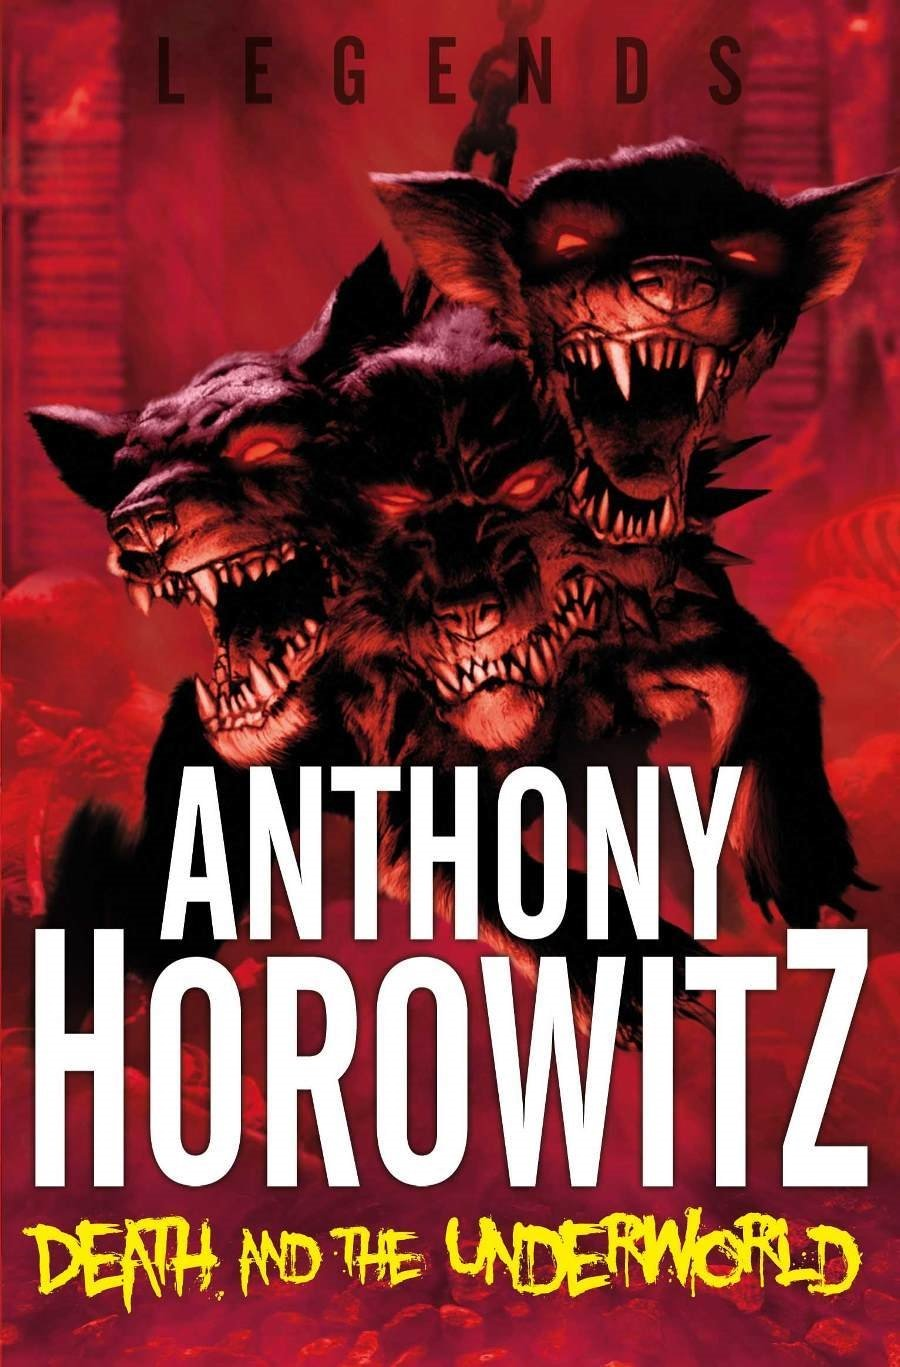 Download Legends: Death and the Underworld (Legends (Anthony Horowitz Quality)) ebook